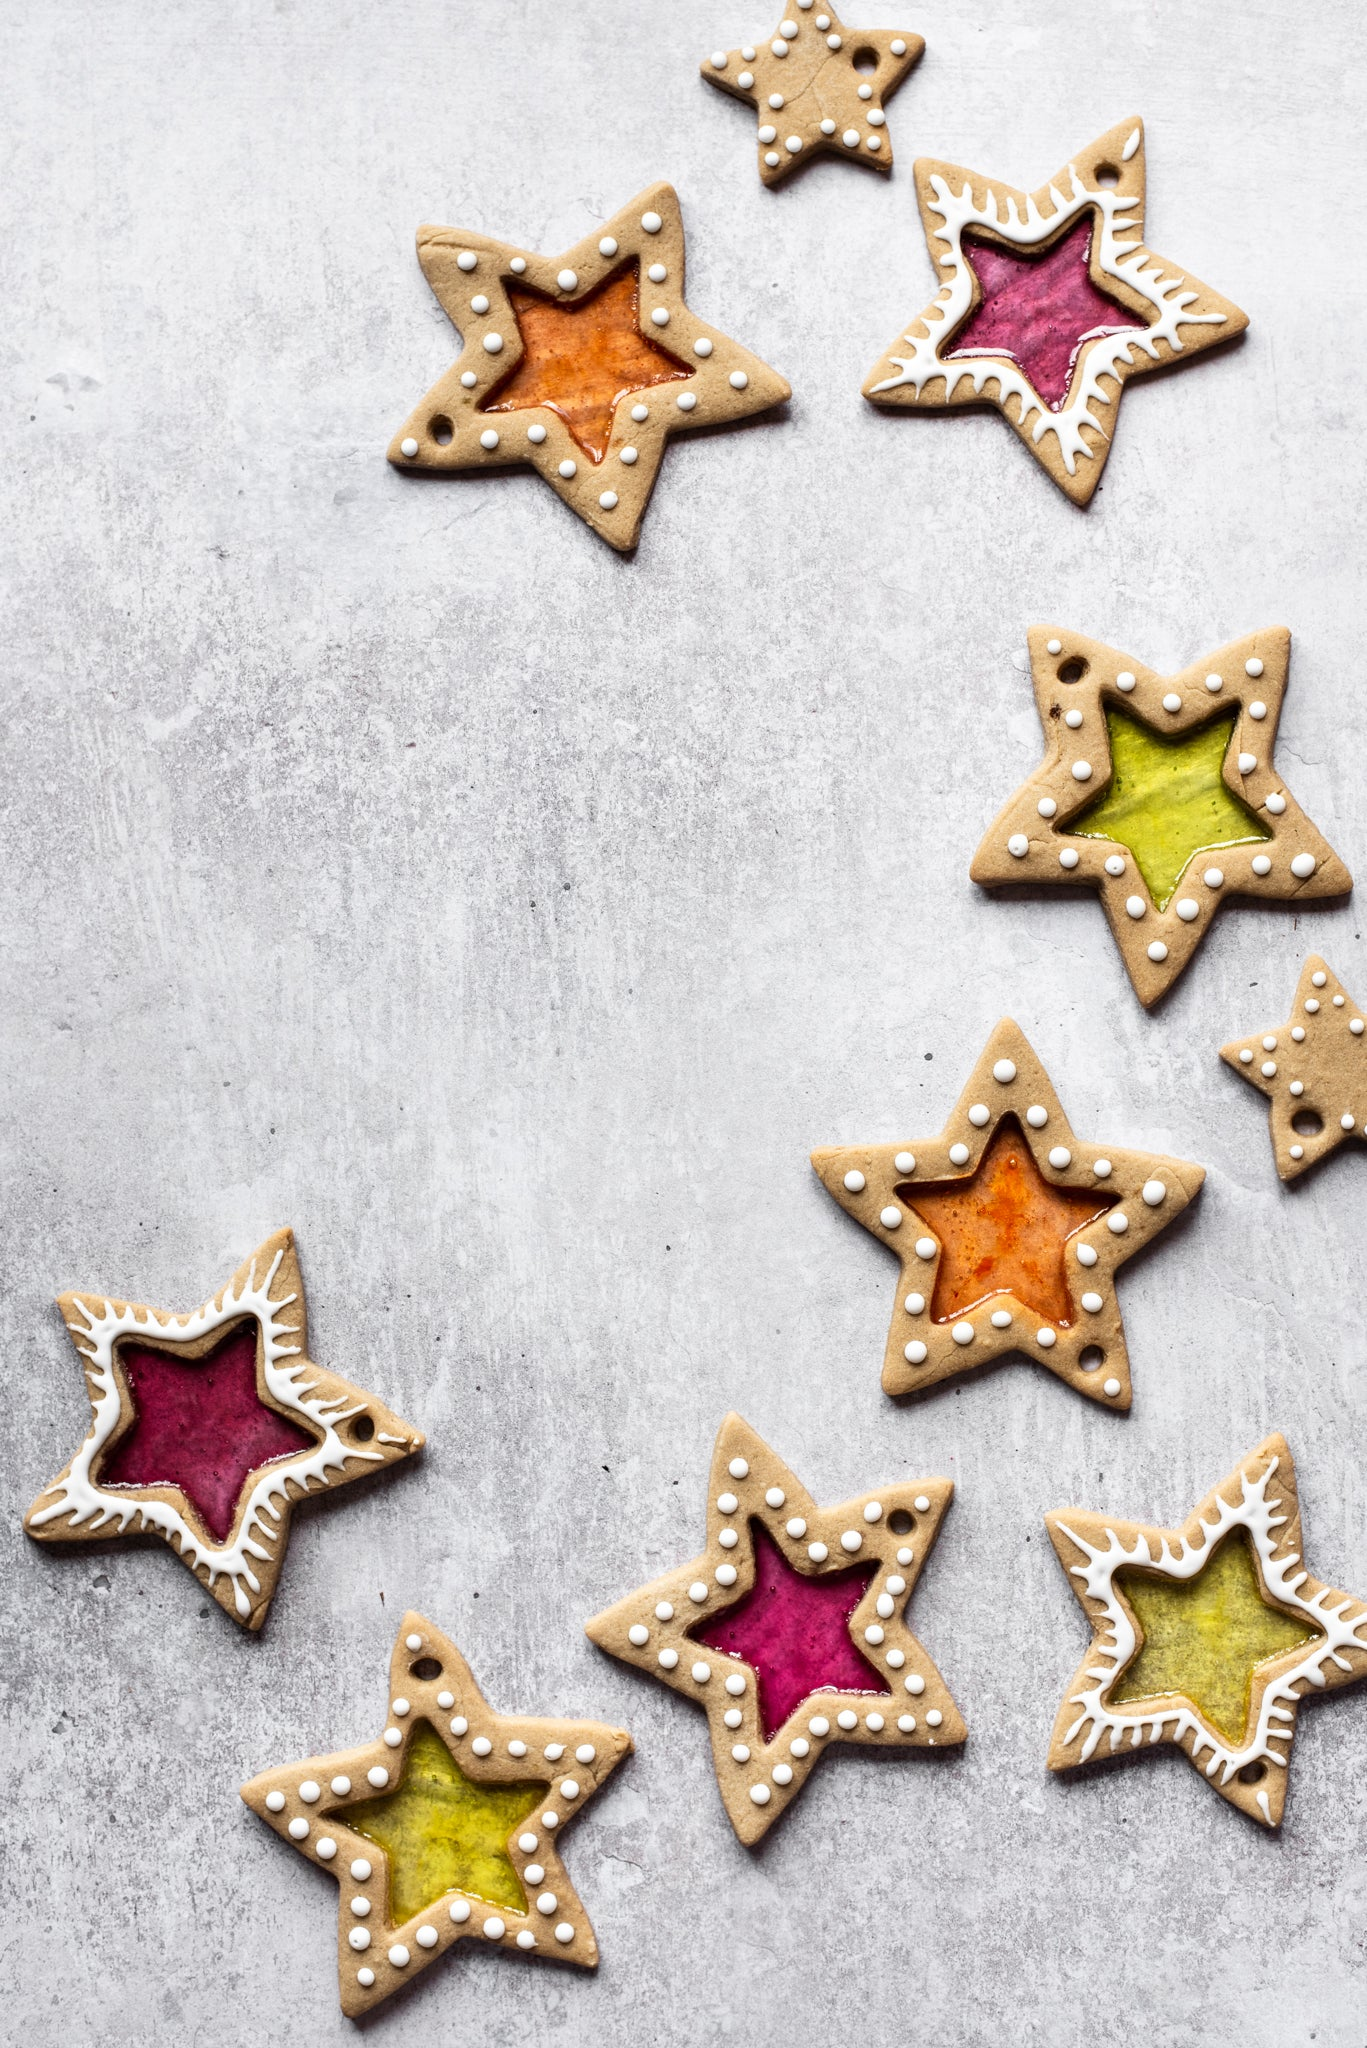 Stained-Glass-Biscuits-WEB-RES-1.jpg